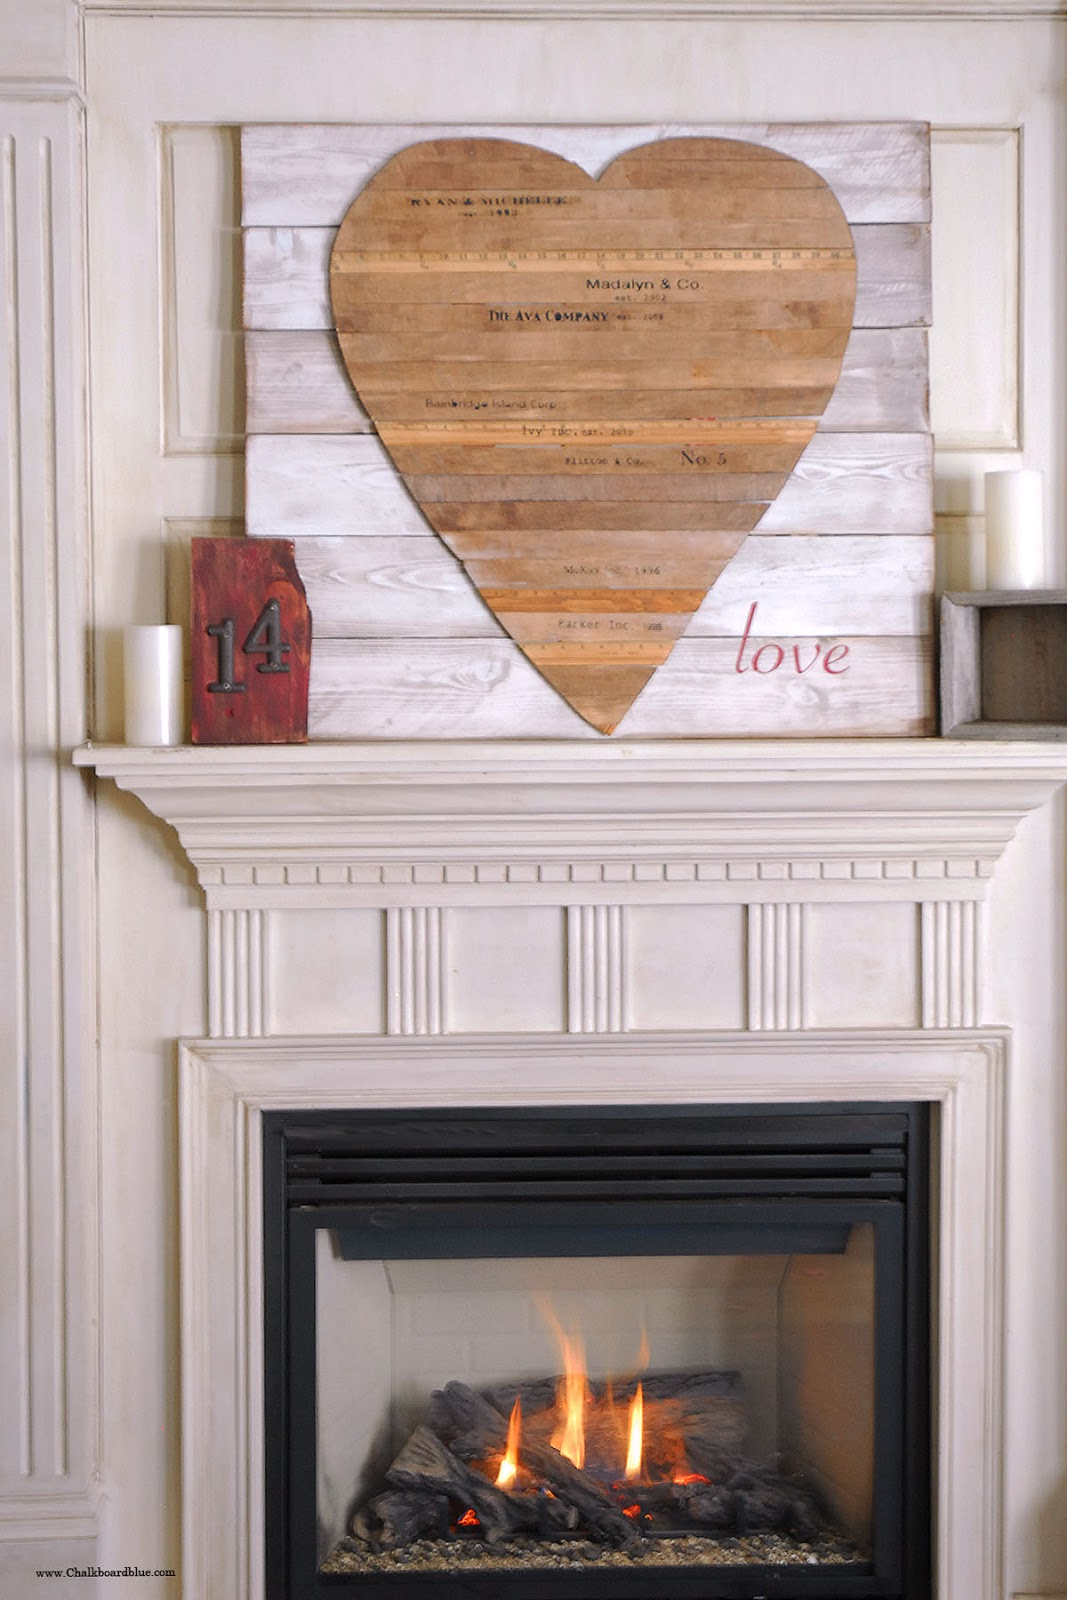 chalkboard blue how i made our wooden heart